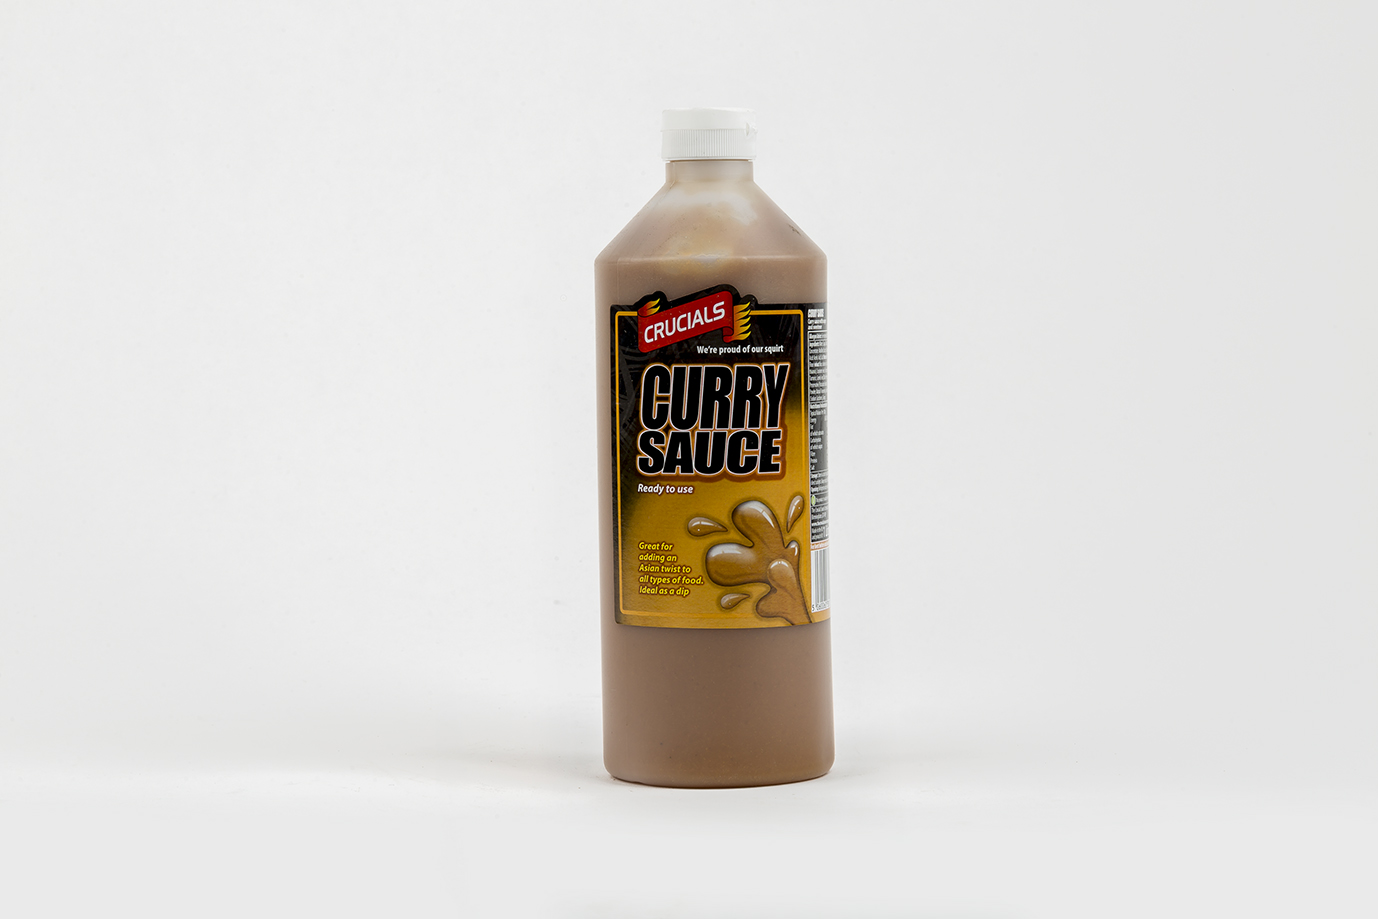 Curry Sauce 1 ltr (Crucial)